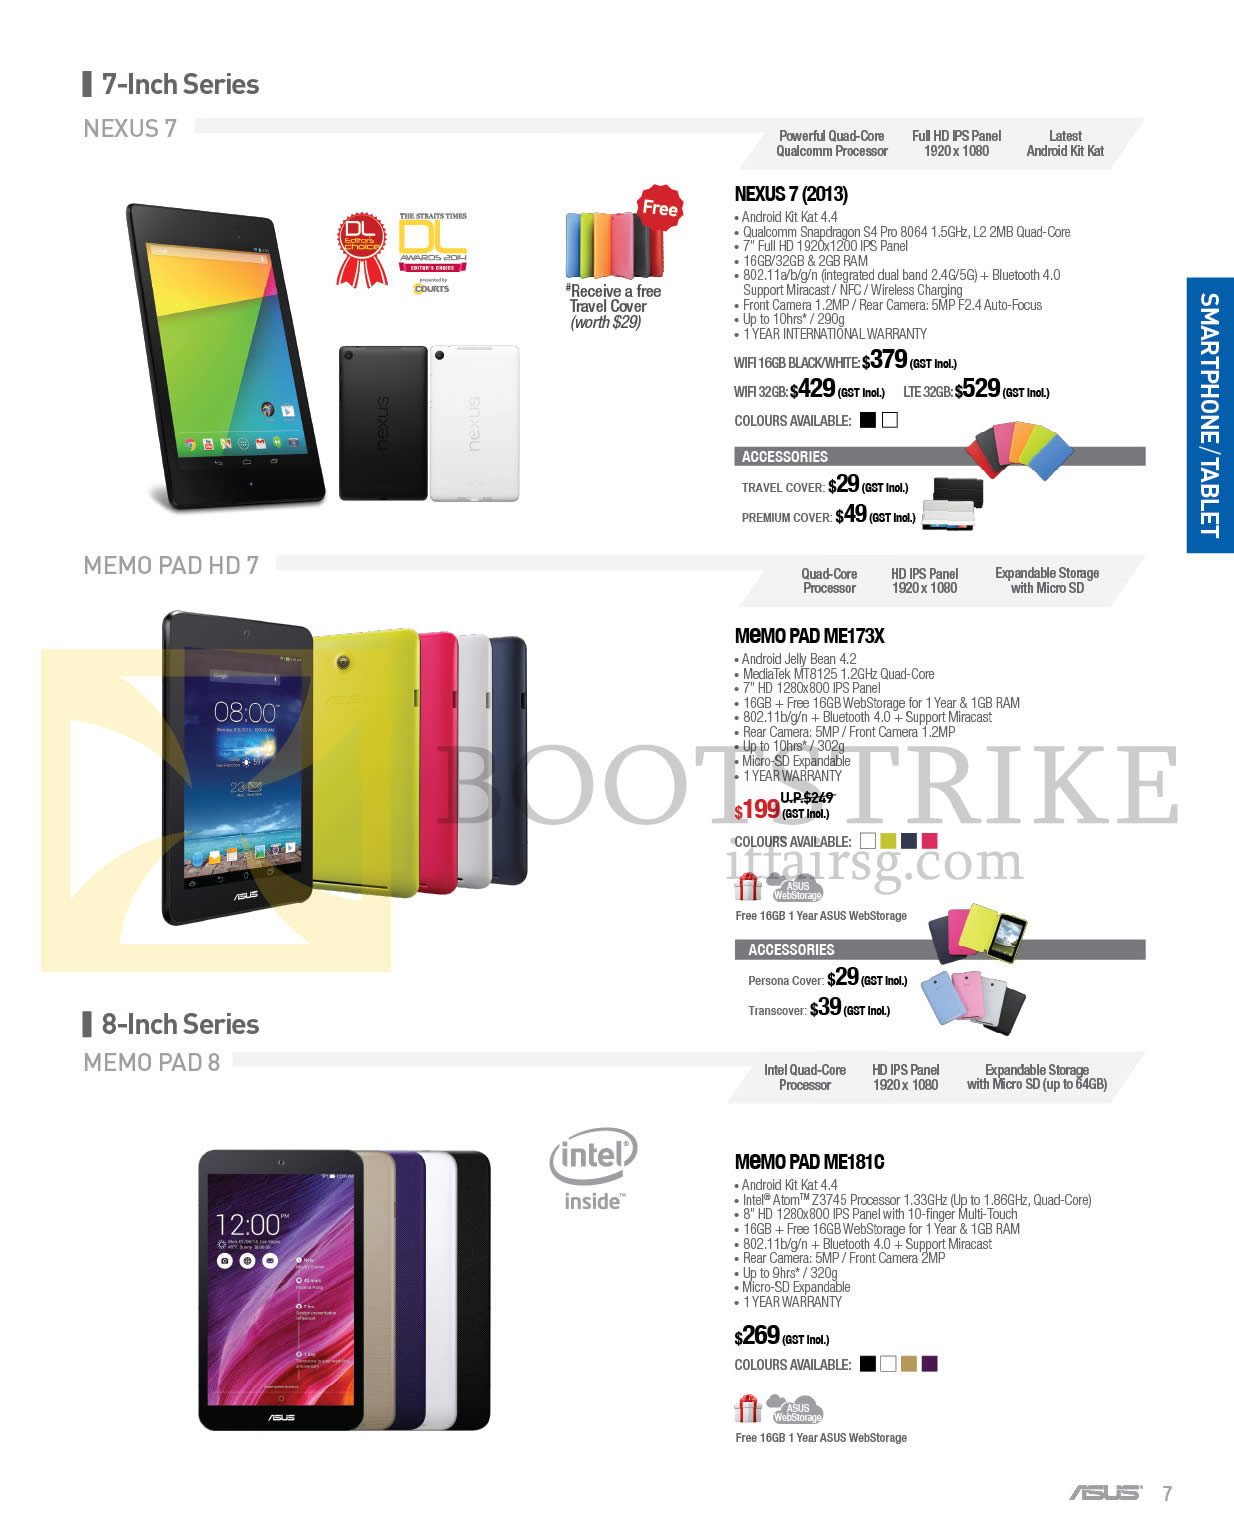 COMEX 2014 price list image brochure of ASUS Tablets Nexus 7 2013, Memo Pad ME173X, ME181C, Memopad HD 8